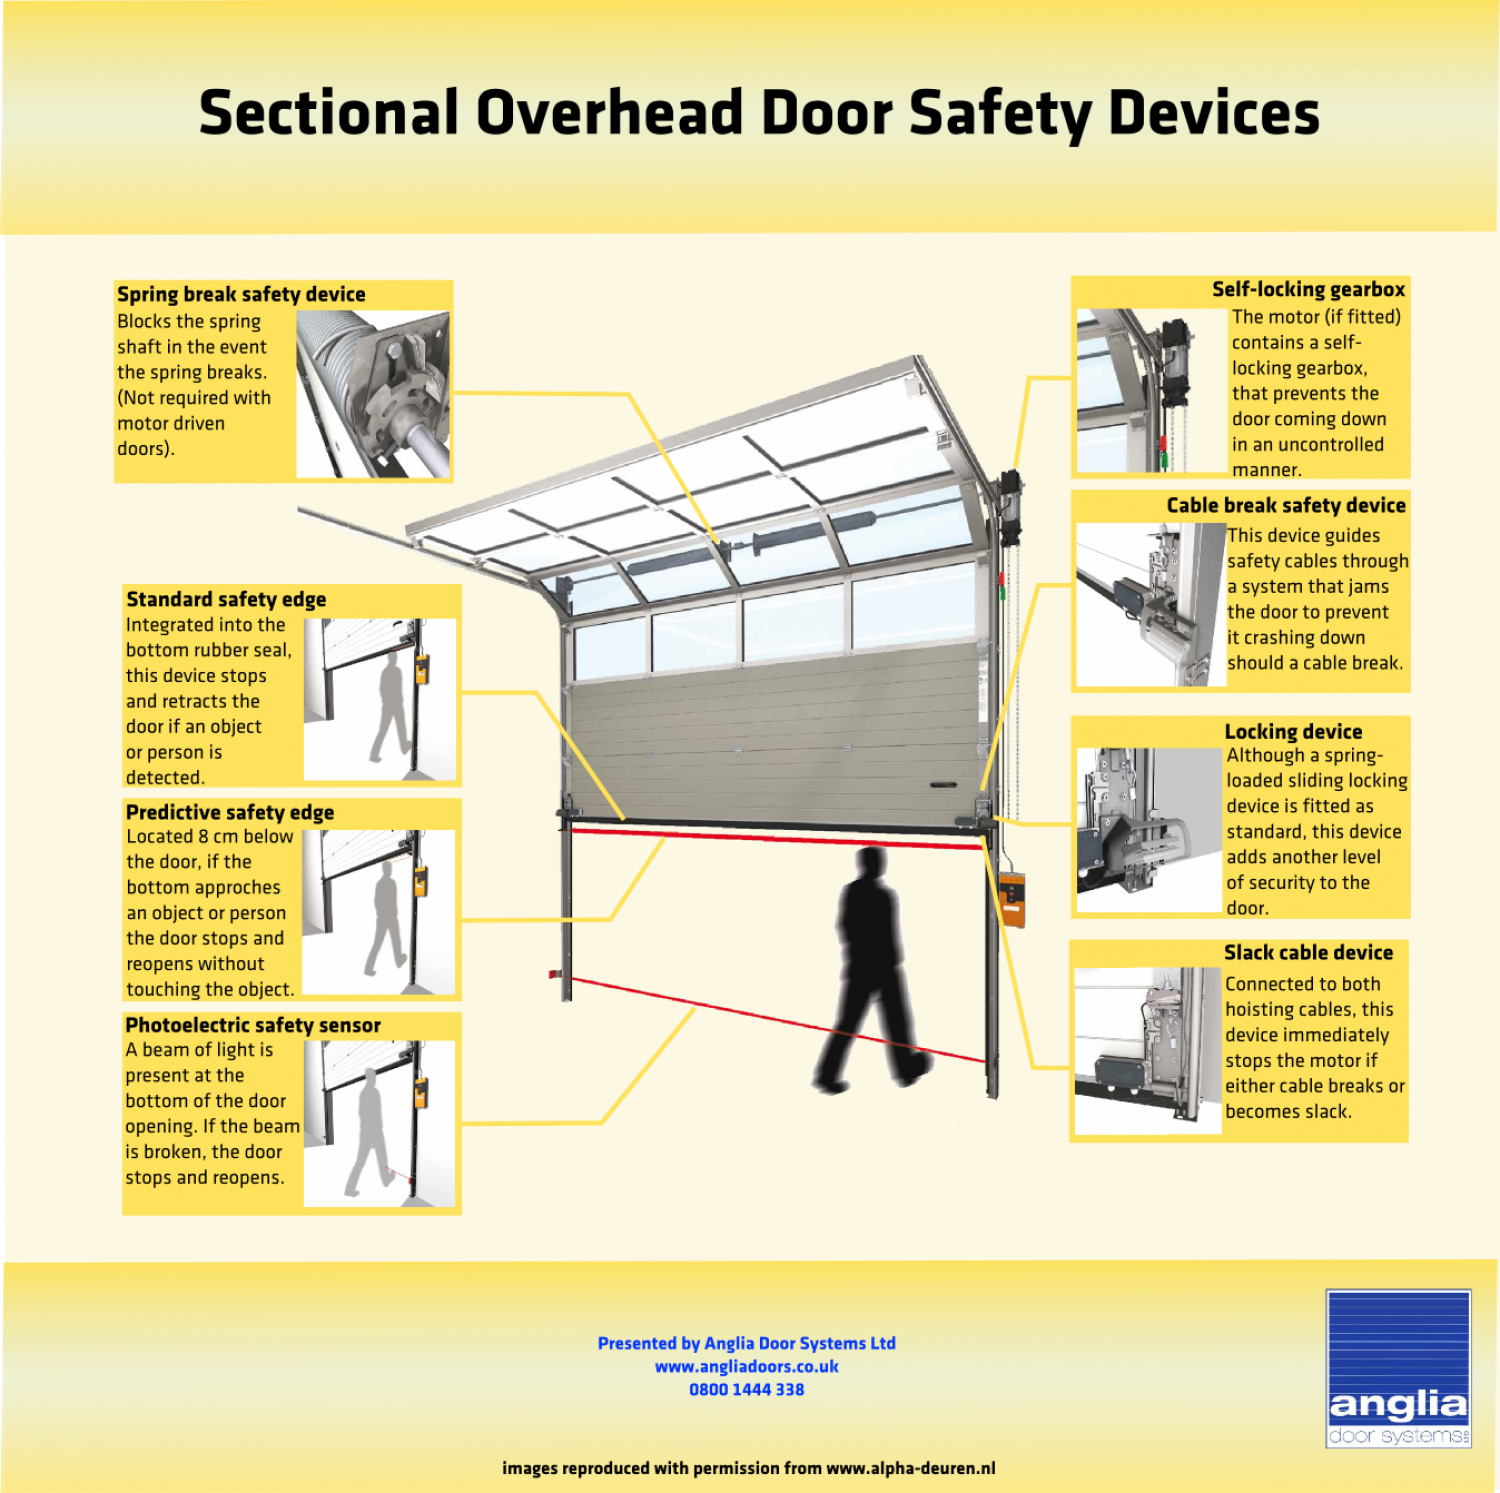 Sectional Overhead Safety Devices Infographic